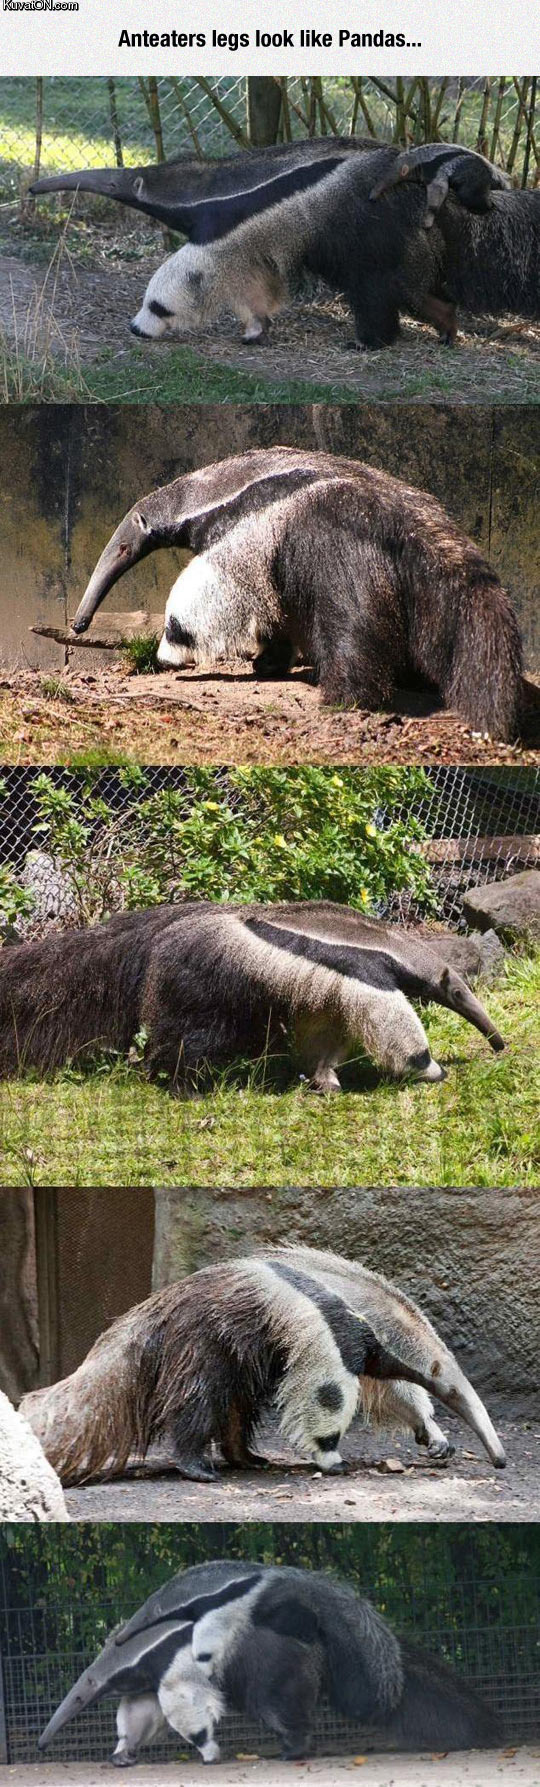 the_anteater_is_two_animals_in_one.jpg